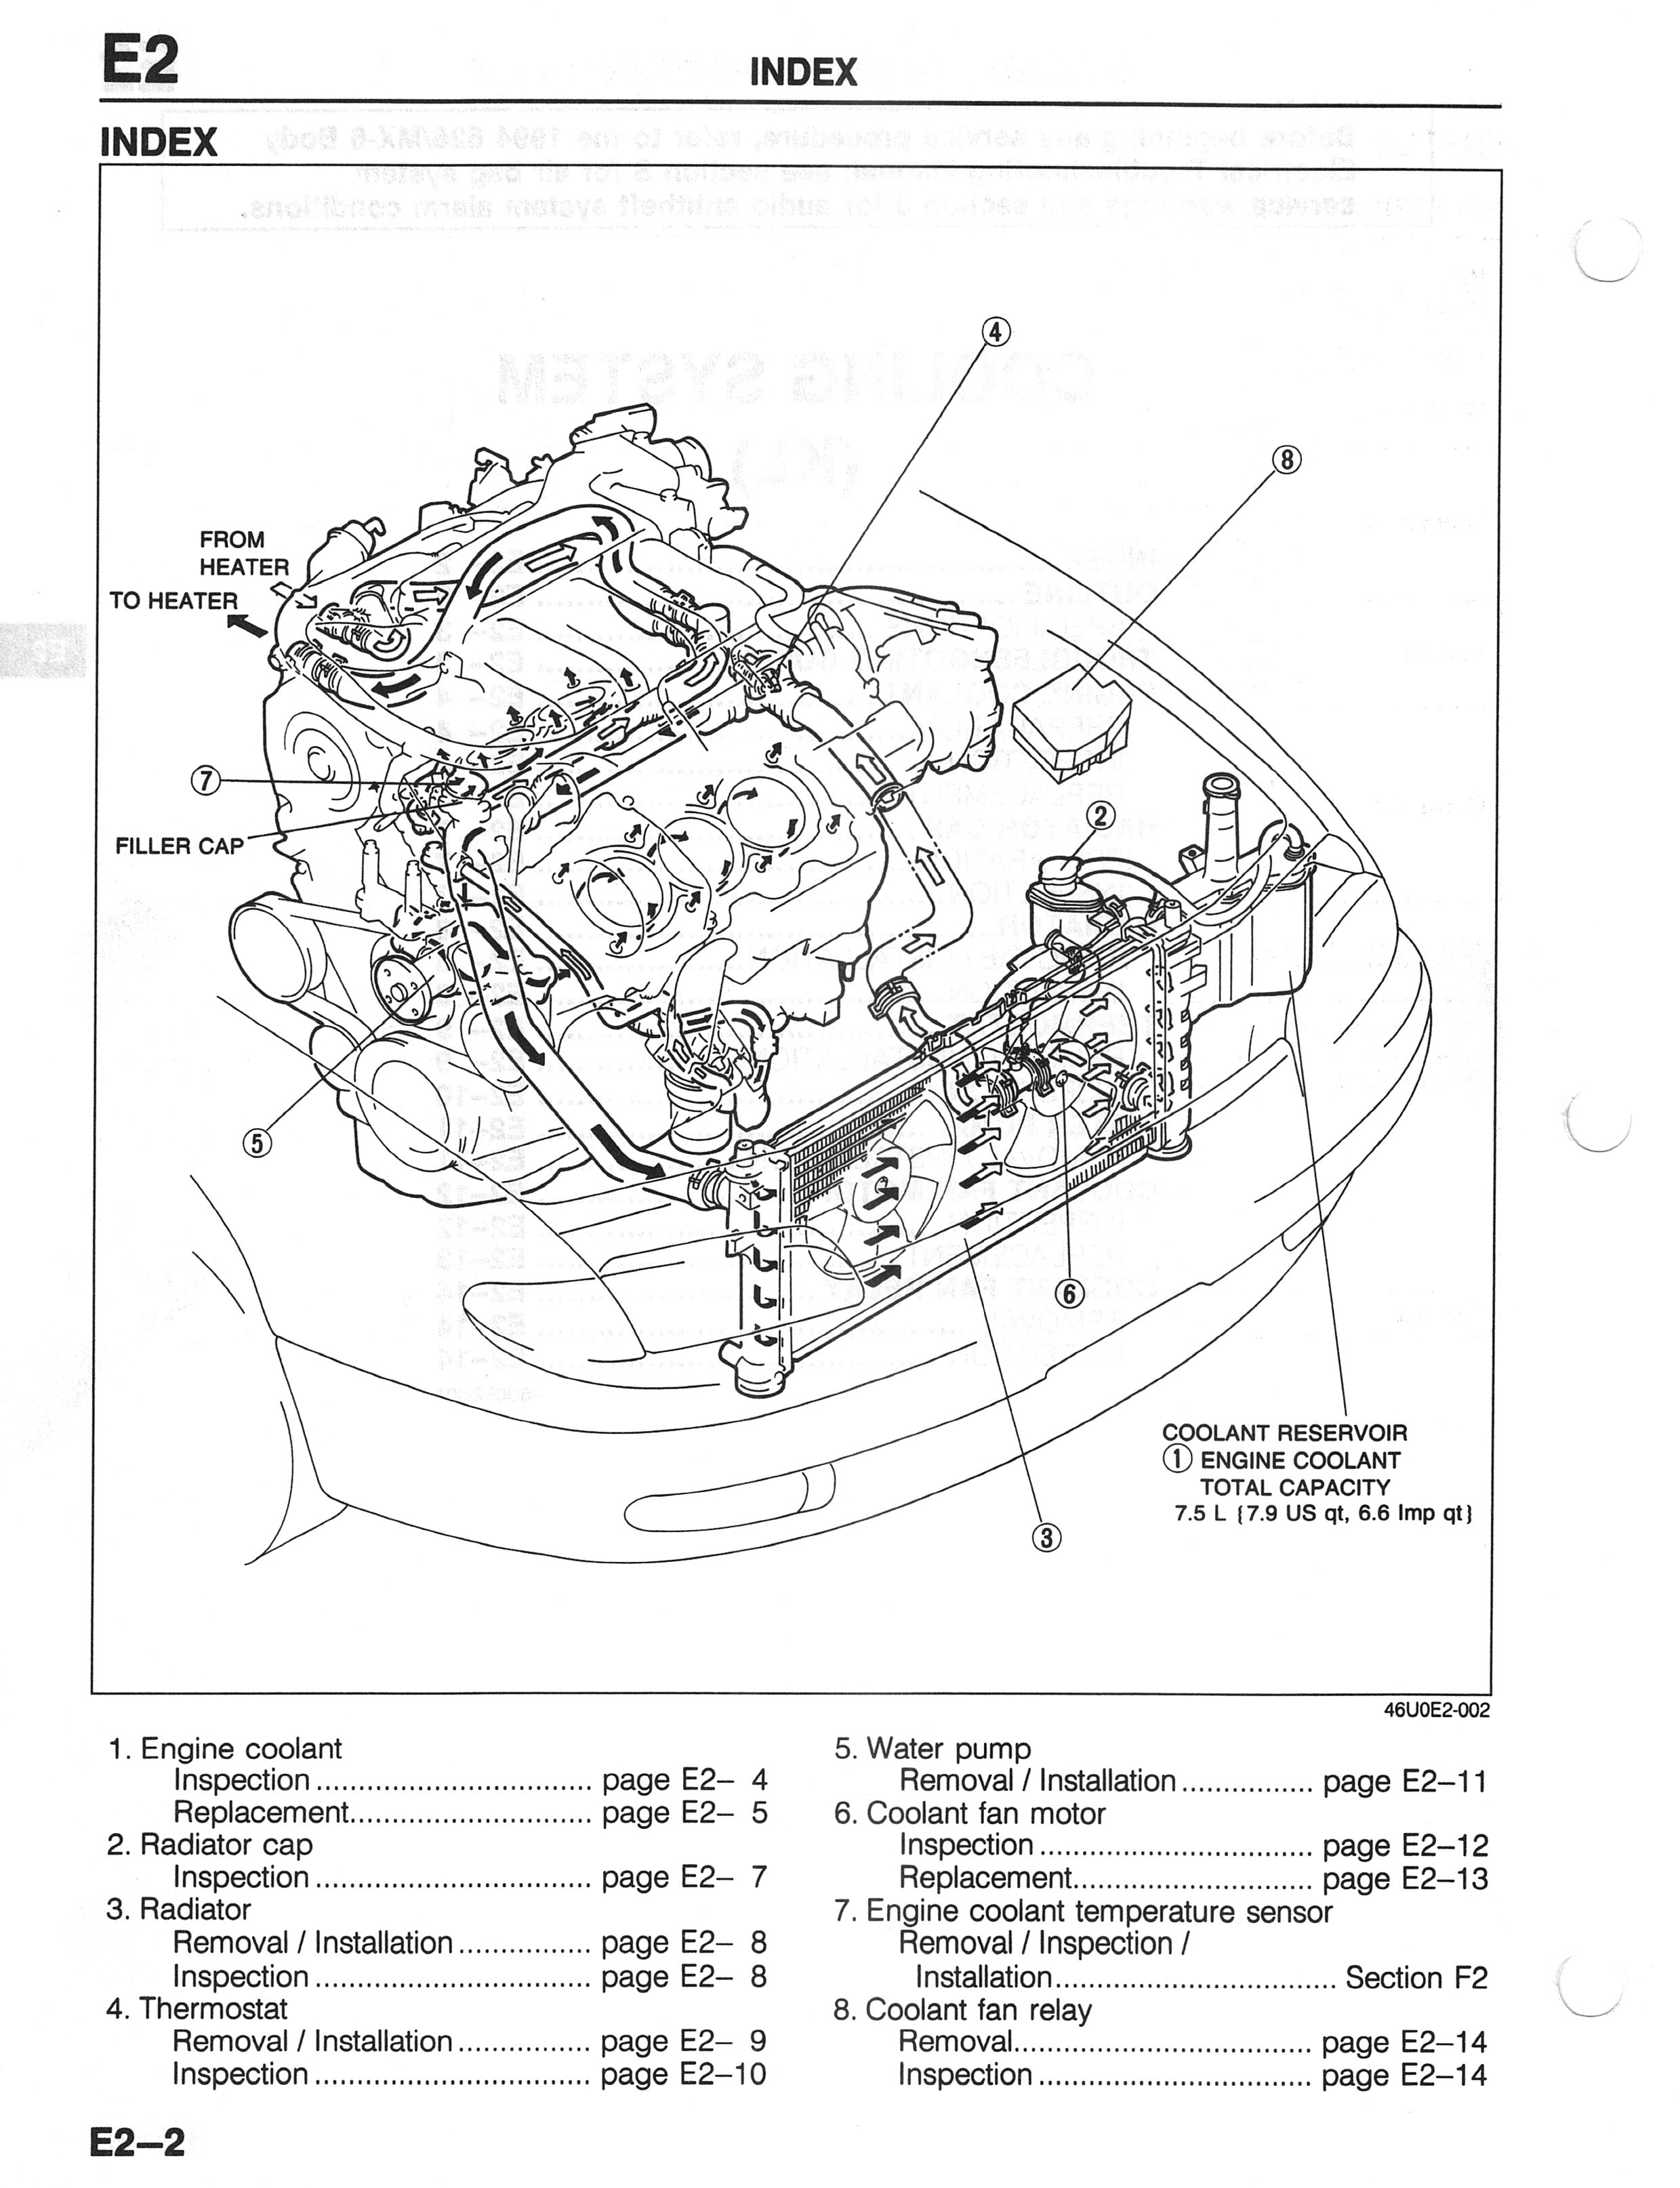 Mazda 3 Engine Parts Diagram Wiring Library 2005 Tribute Fuse 2 5l Schematic Car Rh 149 28 108 16